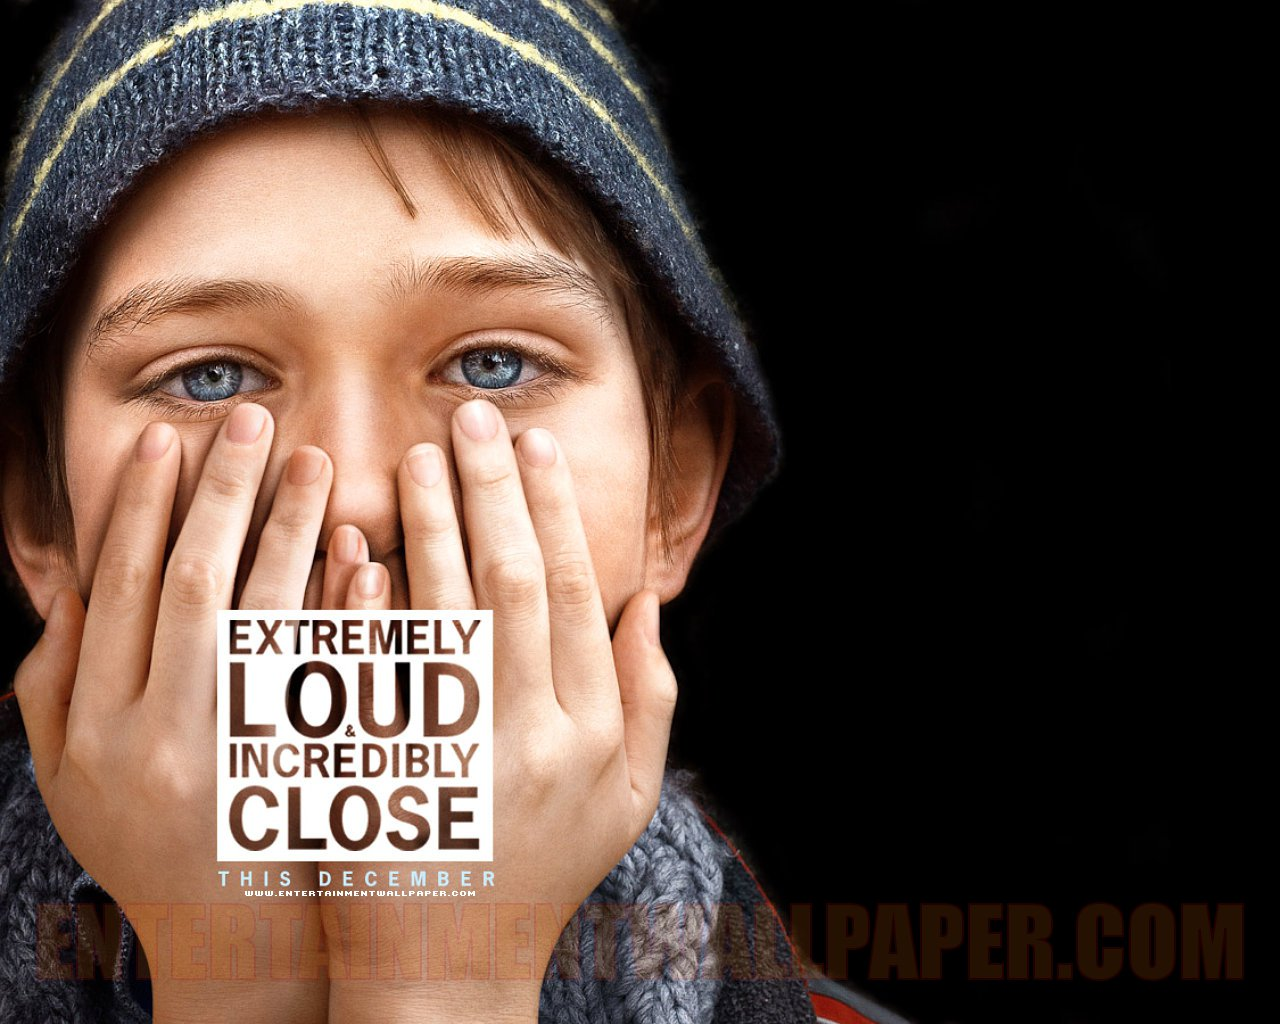 extemly loud and incredibly close values essay Extremely loud and incredibly close in literature, the tone of each character is unique to that particular character jonathan safran foer's extremely loud and.